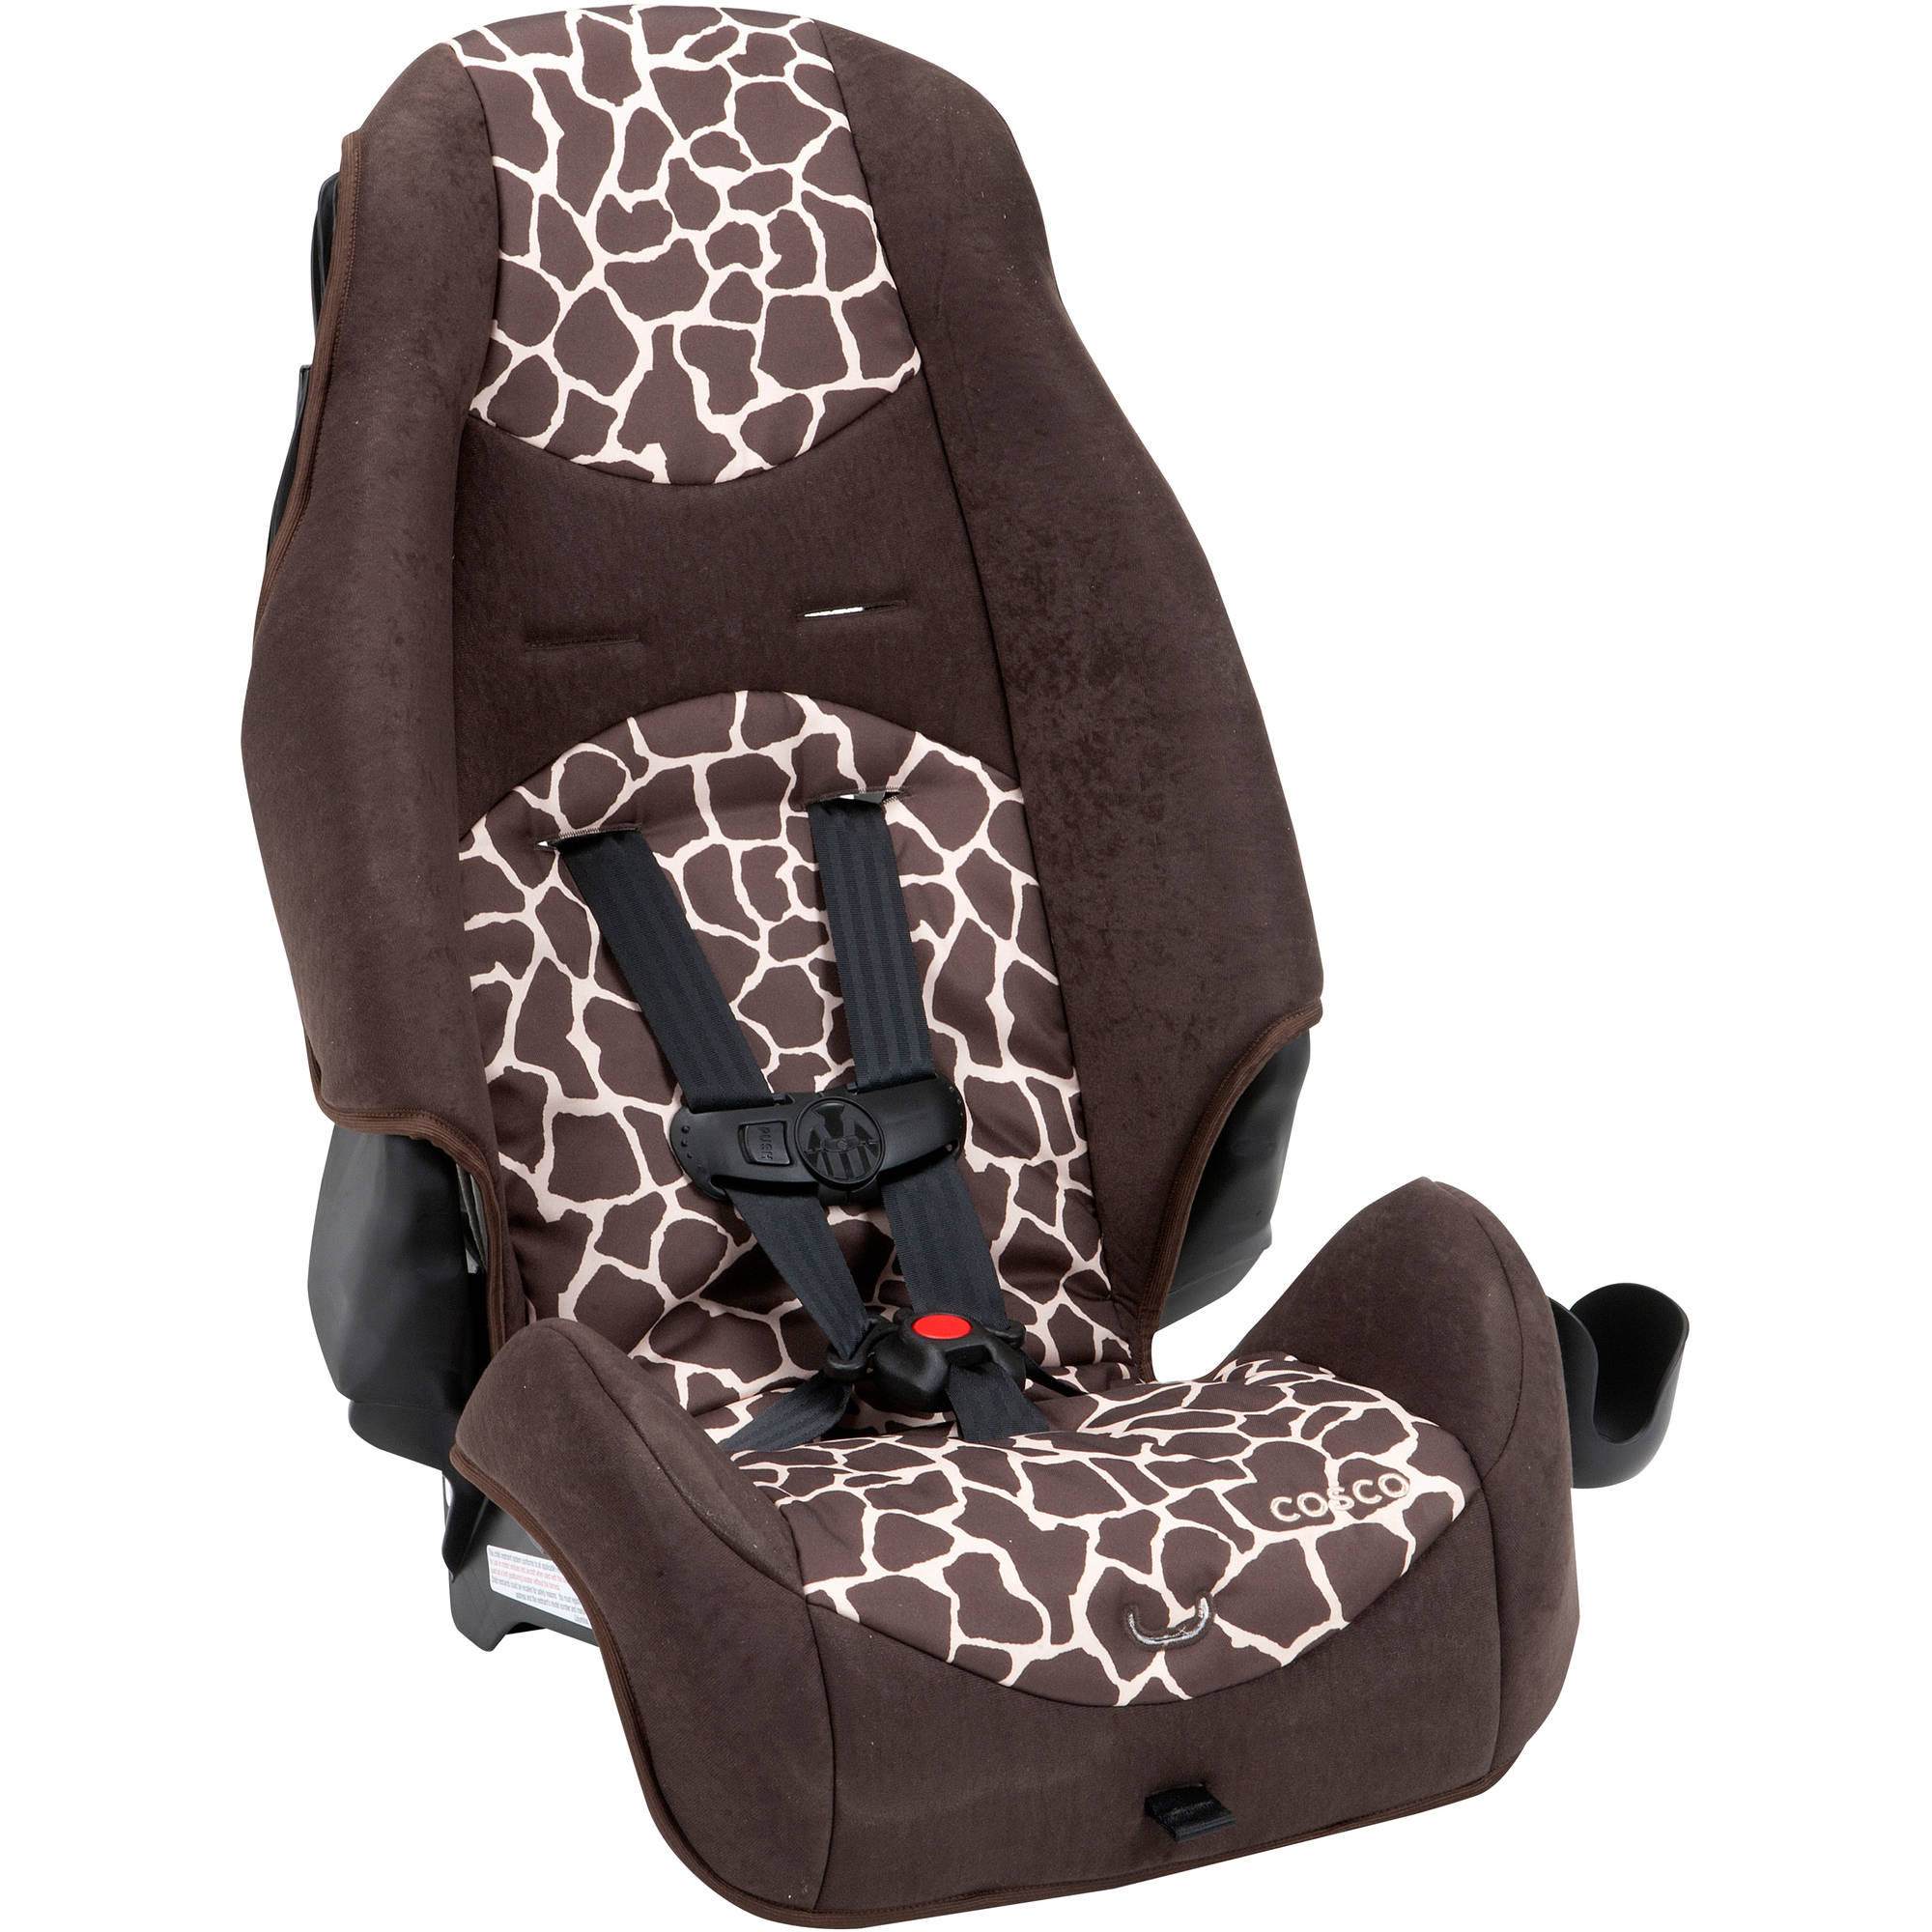 eddie bauer high chair cover pattern covers ikea canada cosco back booster car seat velcromag